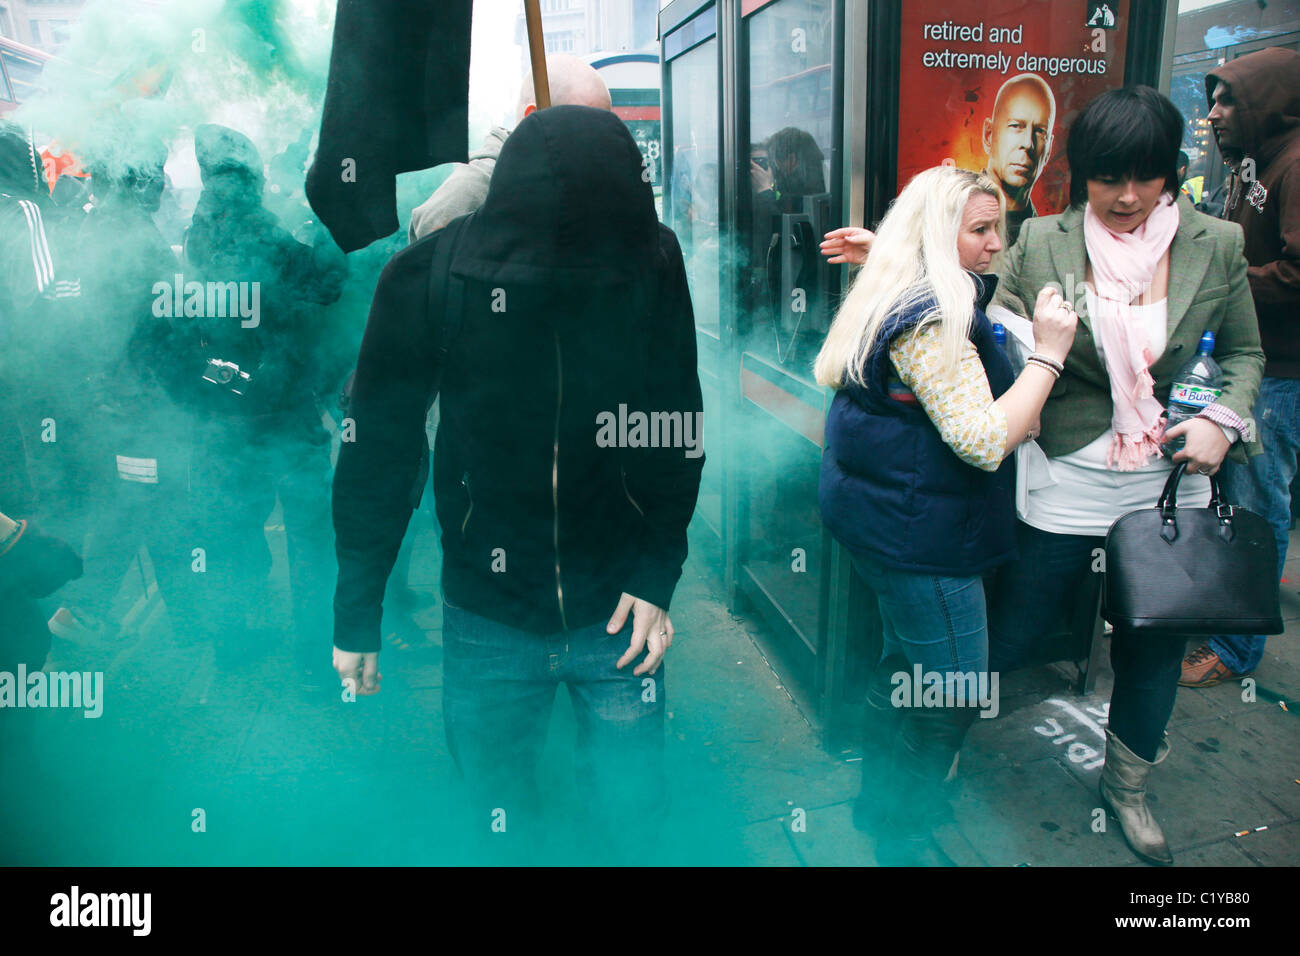 Anti capitalists / anarchists go on the rampage through central London on the back of the peaceful TUC protest march. - Stock Image